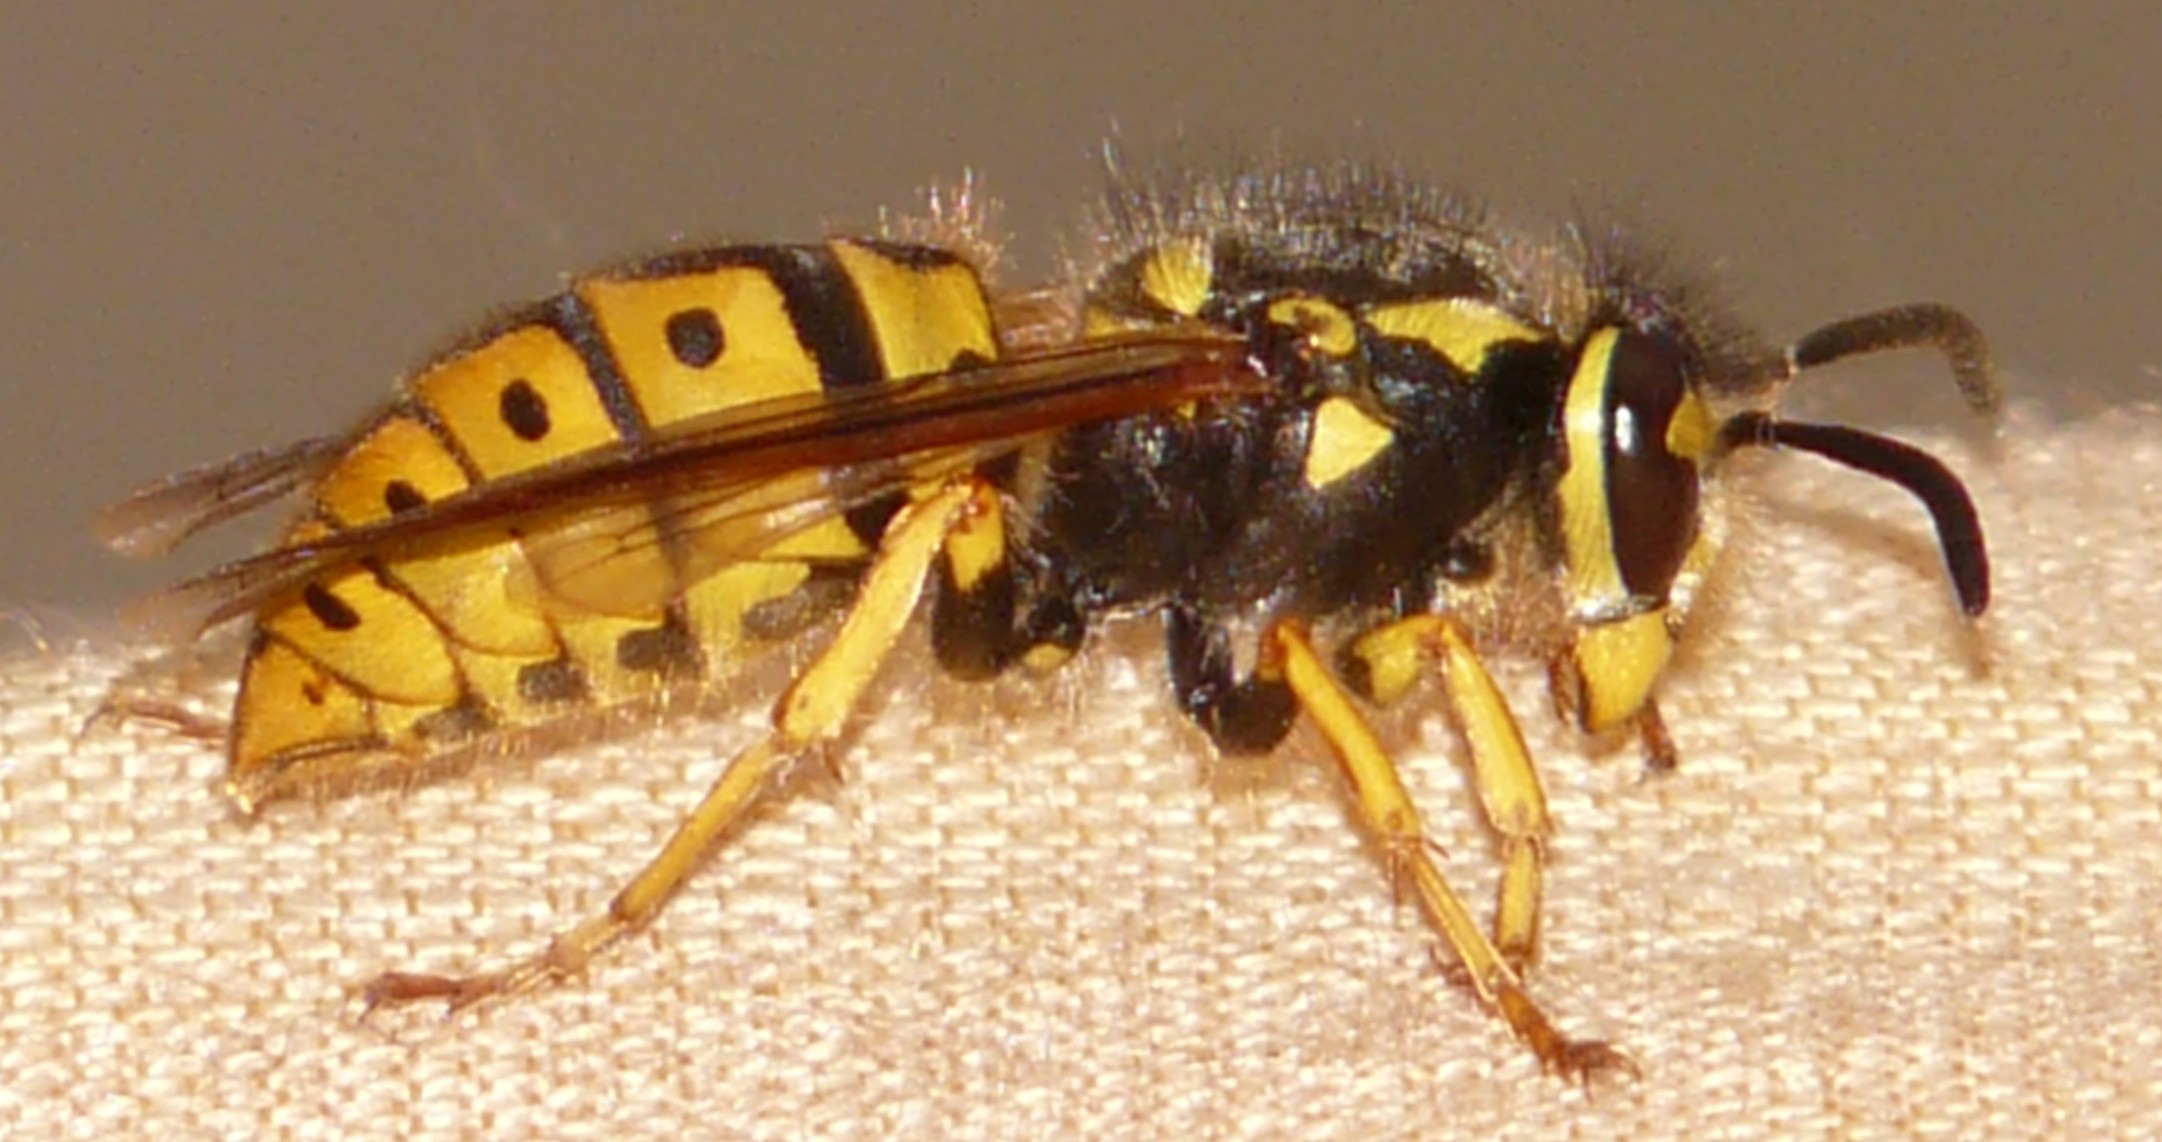 What does a yellow jacket bee look like